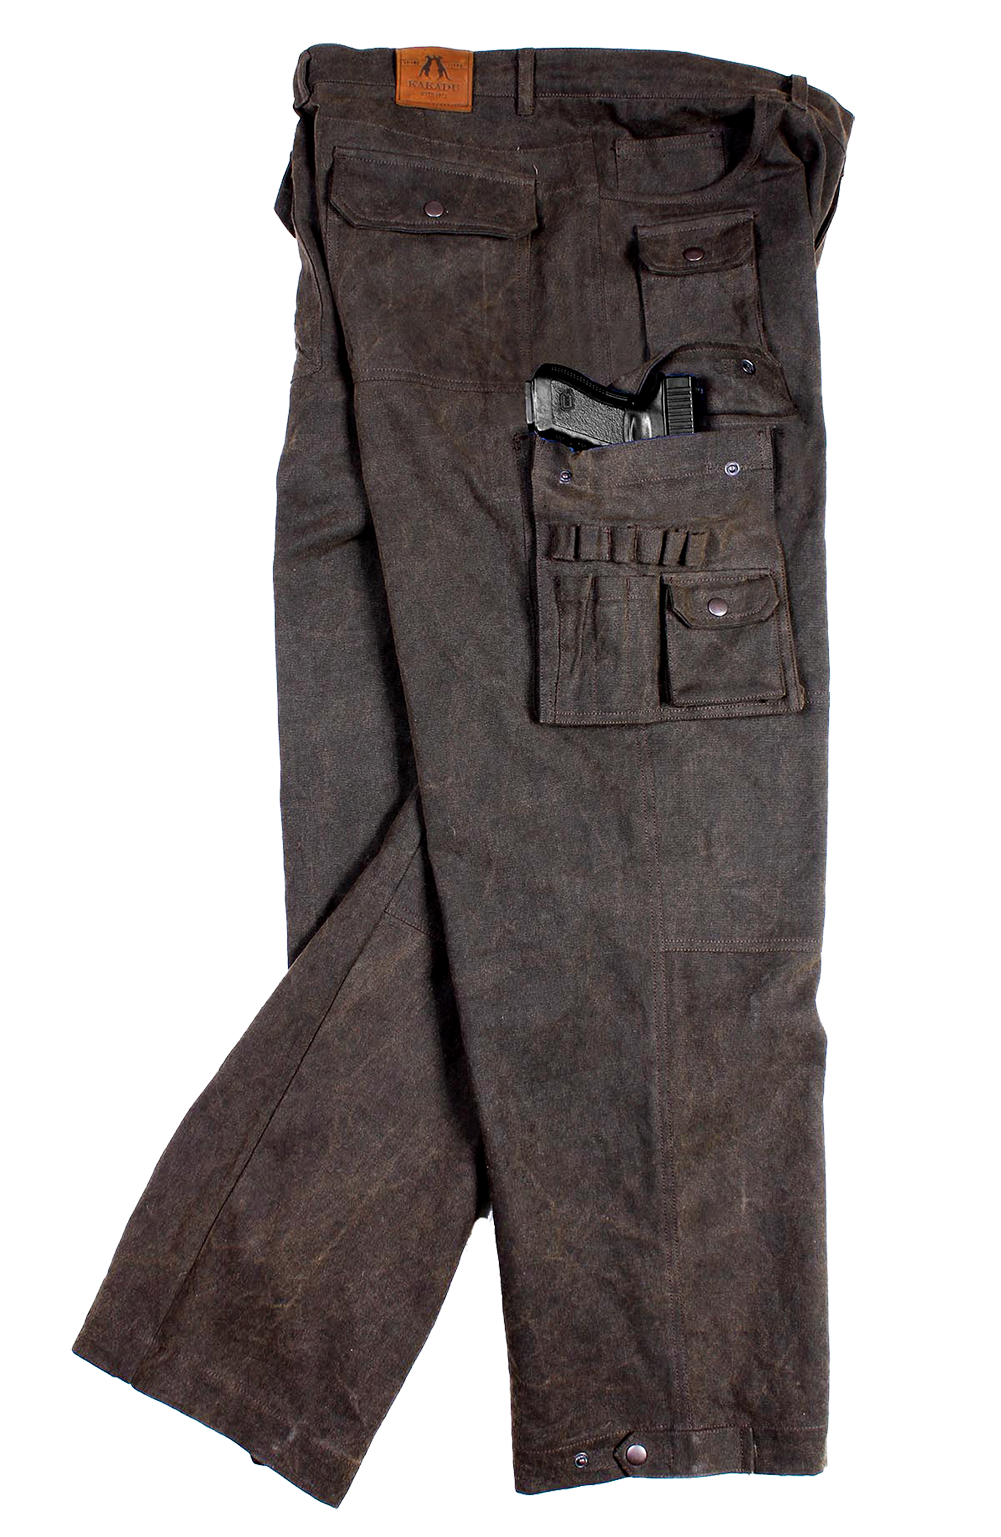 Our HOLSTER CARGO PANTS will carry your 45 or similar smaller weapon  easily. Right side holster only. Find this Pin and more on Men s Concealed  ... 6f2b294daf37d